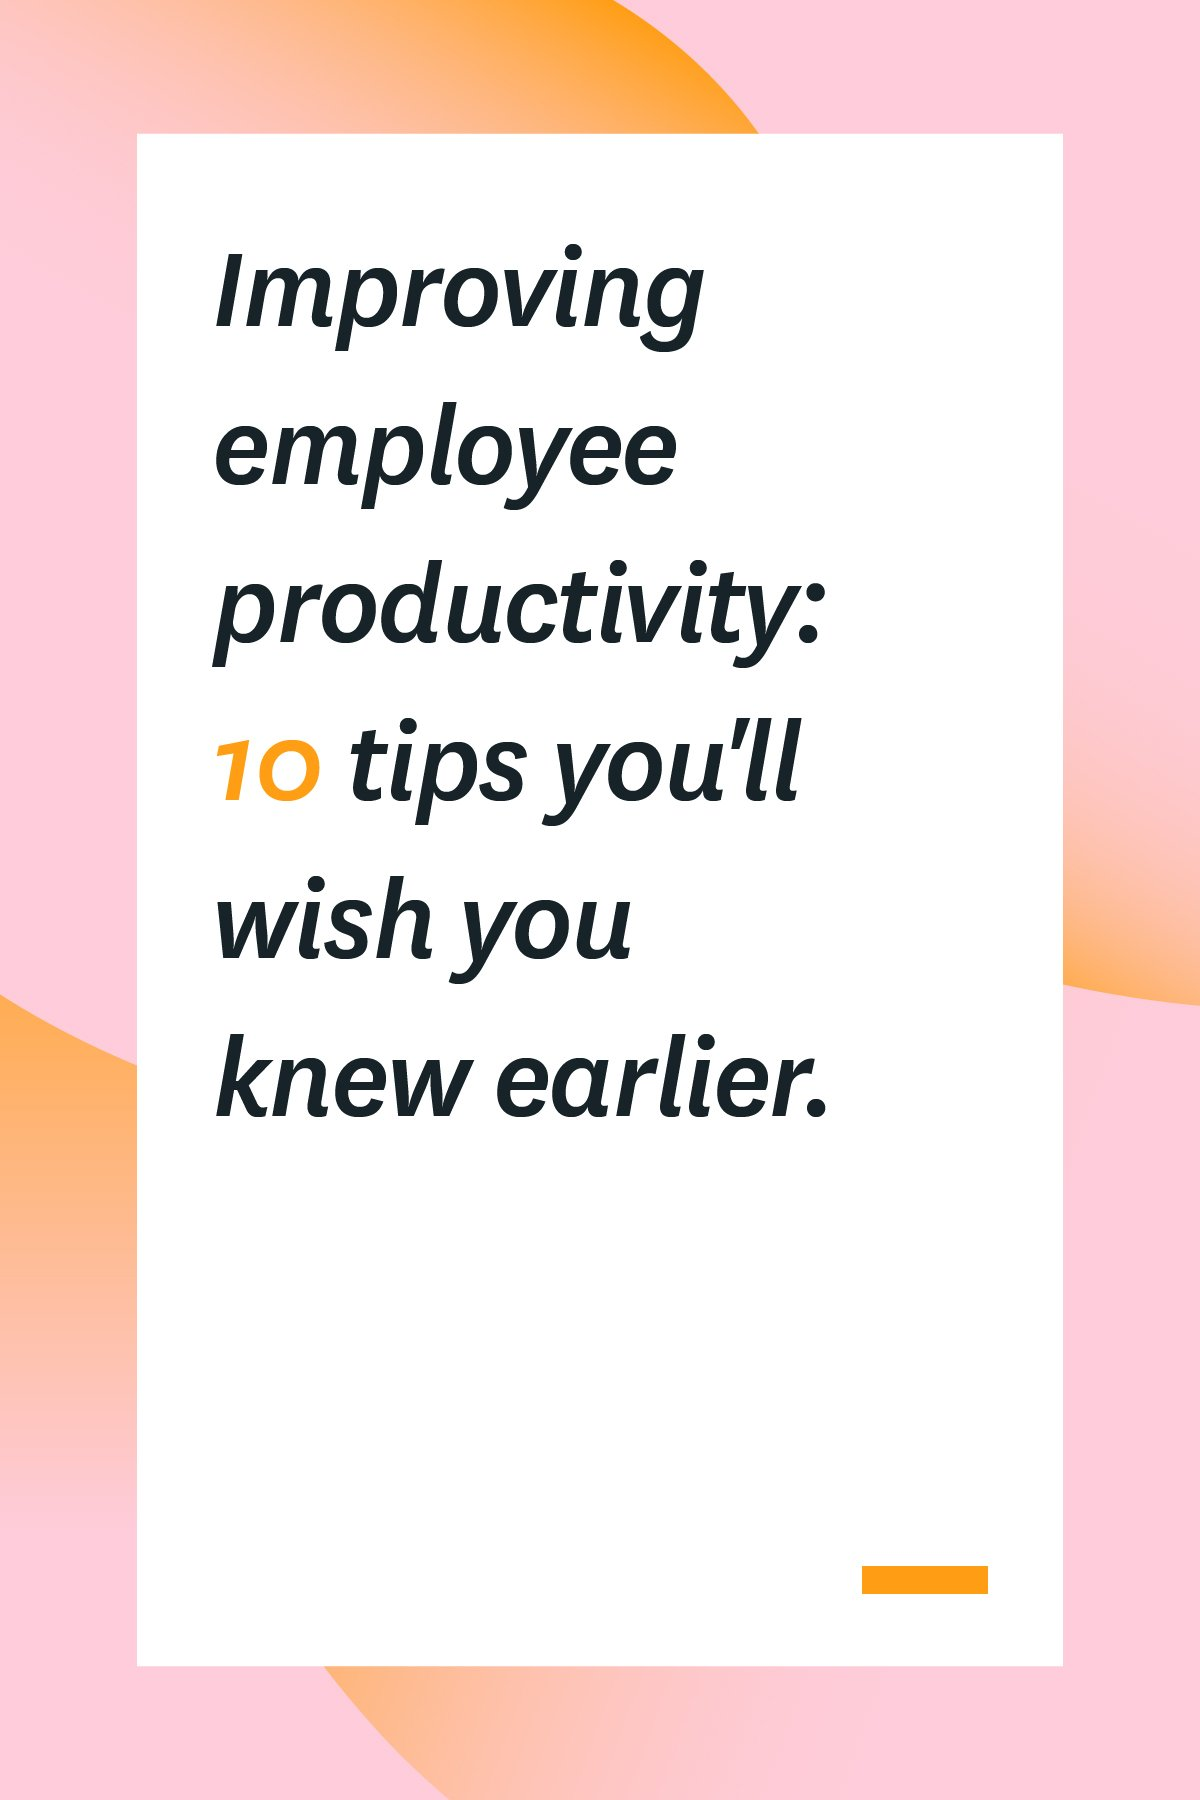 Running out of ideas for improving employee productivity? These 10 tips will help you motivate your employees to be more productive. #productivity #productivityatwork